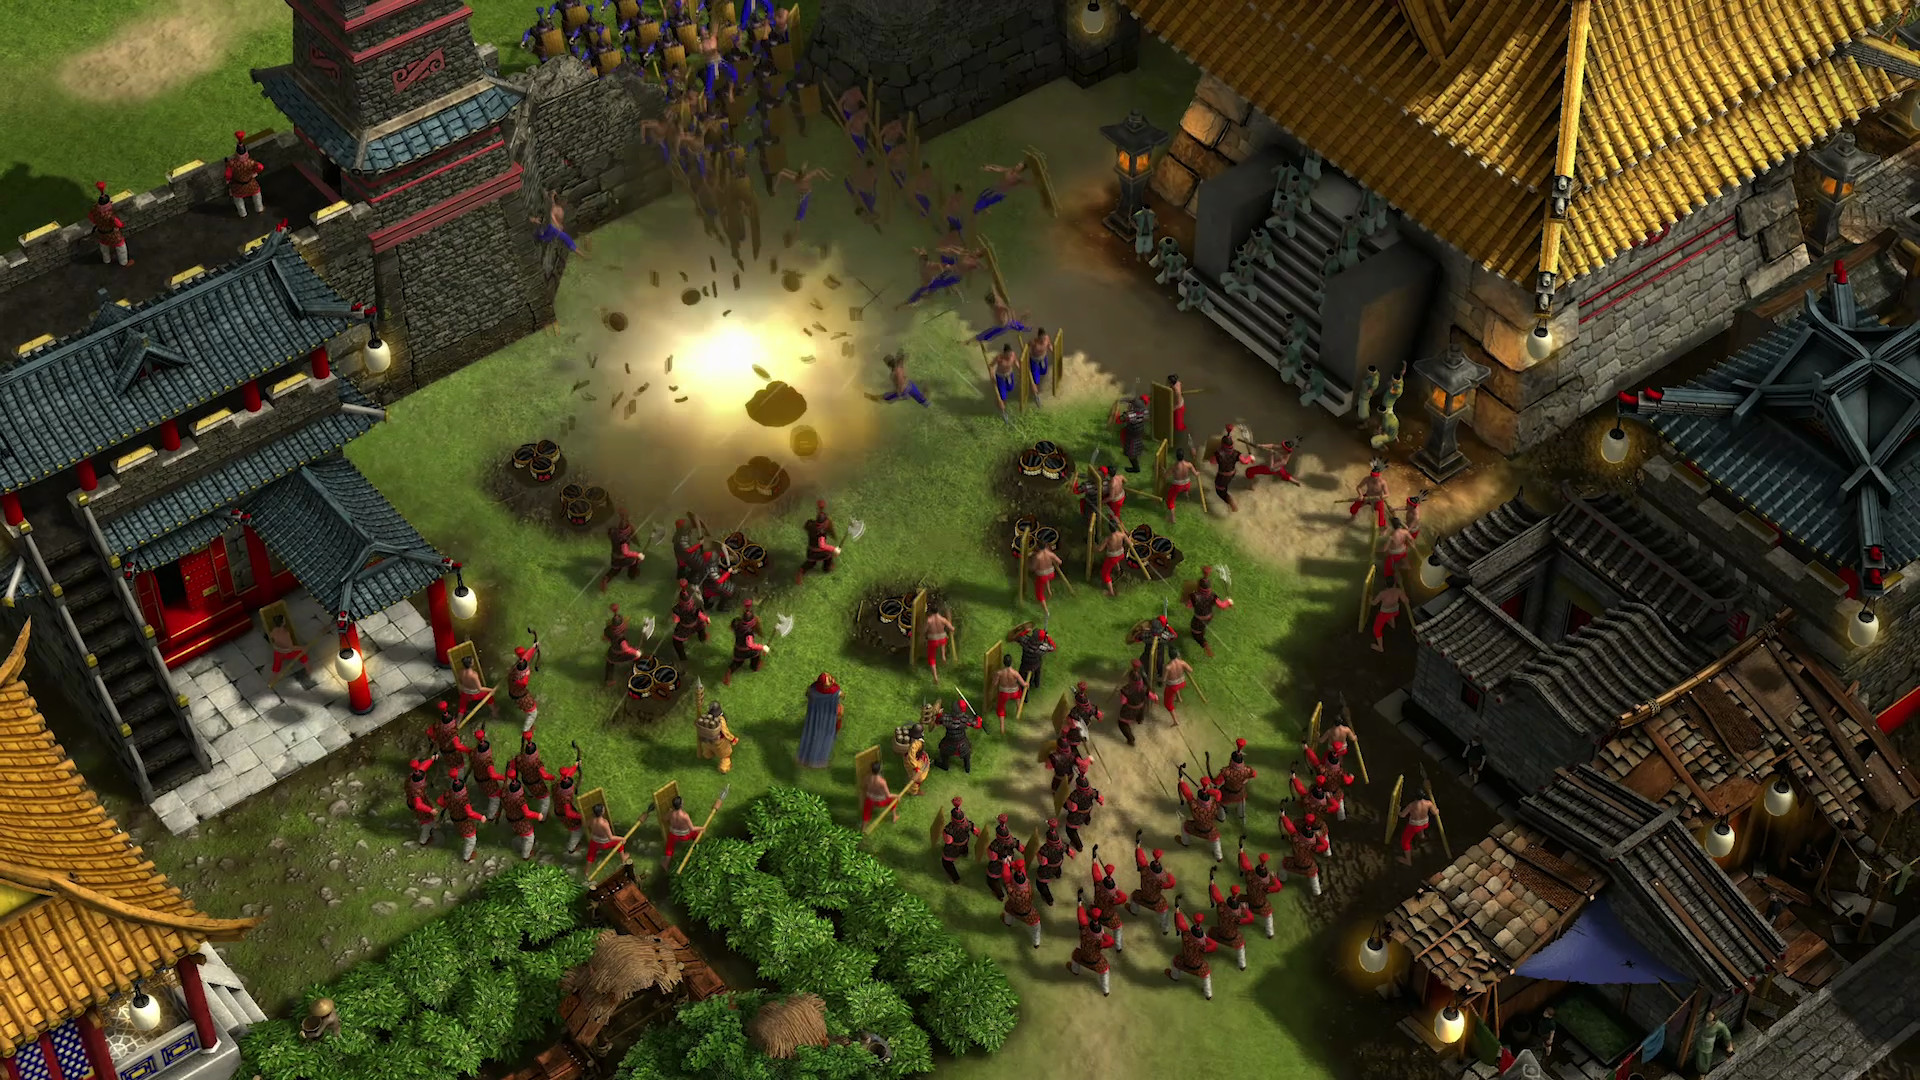 Quelle: FireFly Studios - Stronghold: Warlords - Durchbruch der Mauer